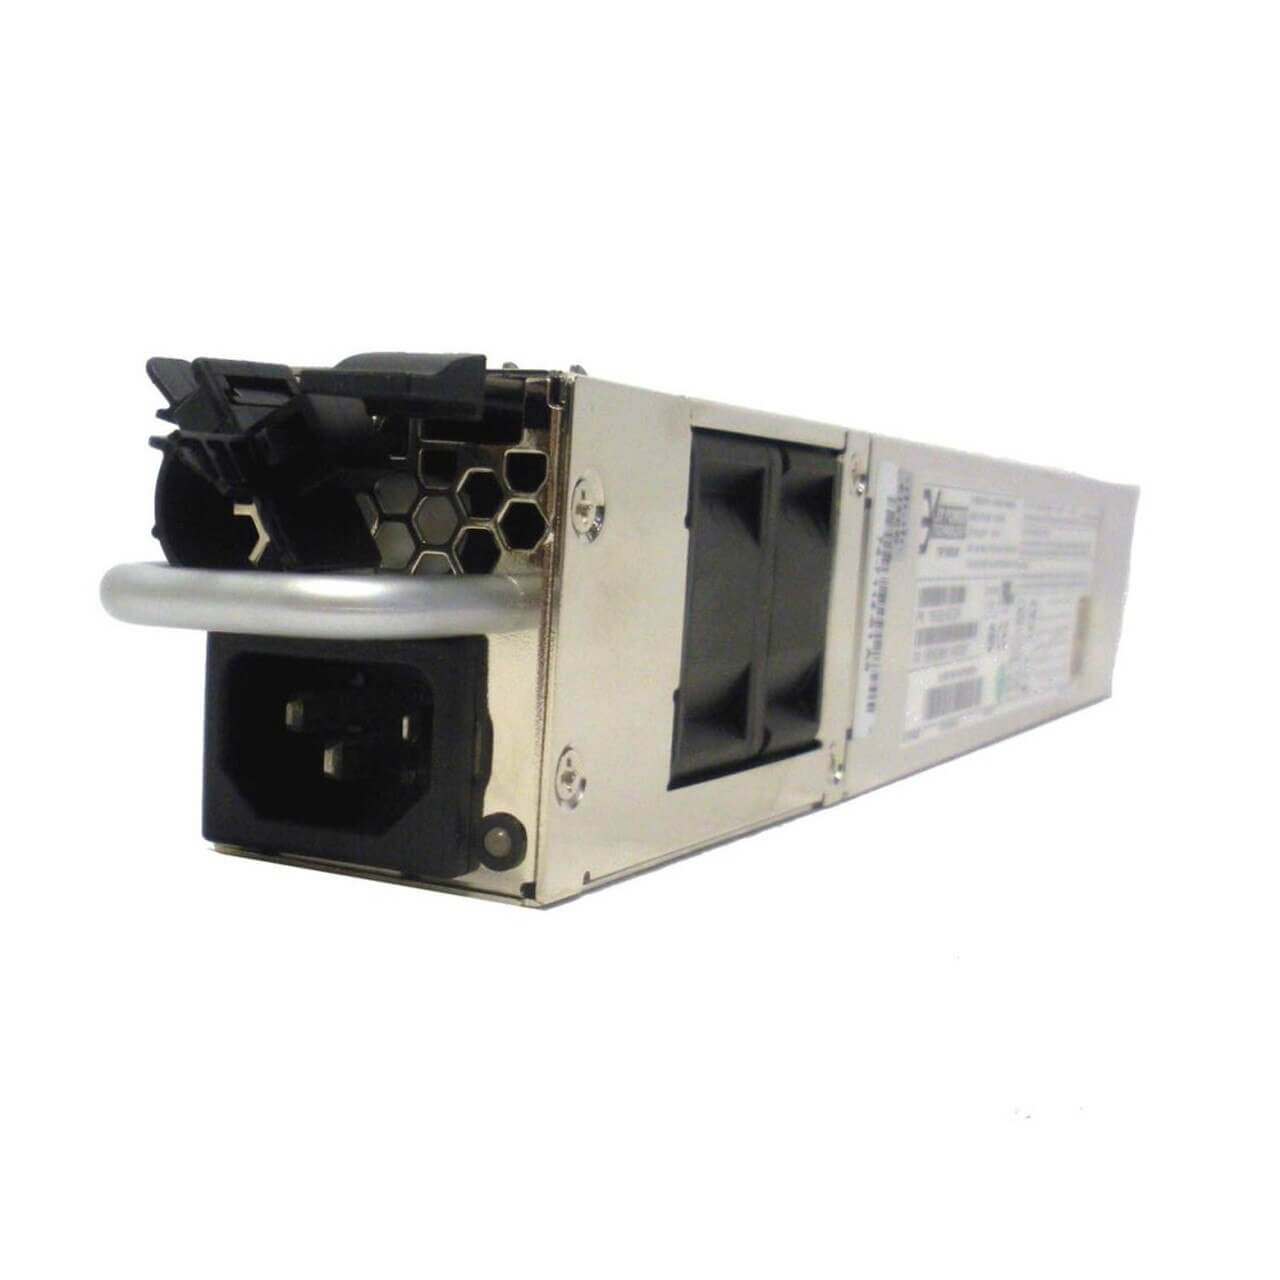 Buy & save on Cisco server power supplies from your trusted partners at Flagship Technologies. Buy Now! Or browse our extensive revolving inventory of refurbished spare parts online and get the best deals to maintain or upgrade your IT project or data center.